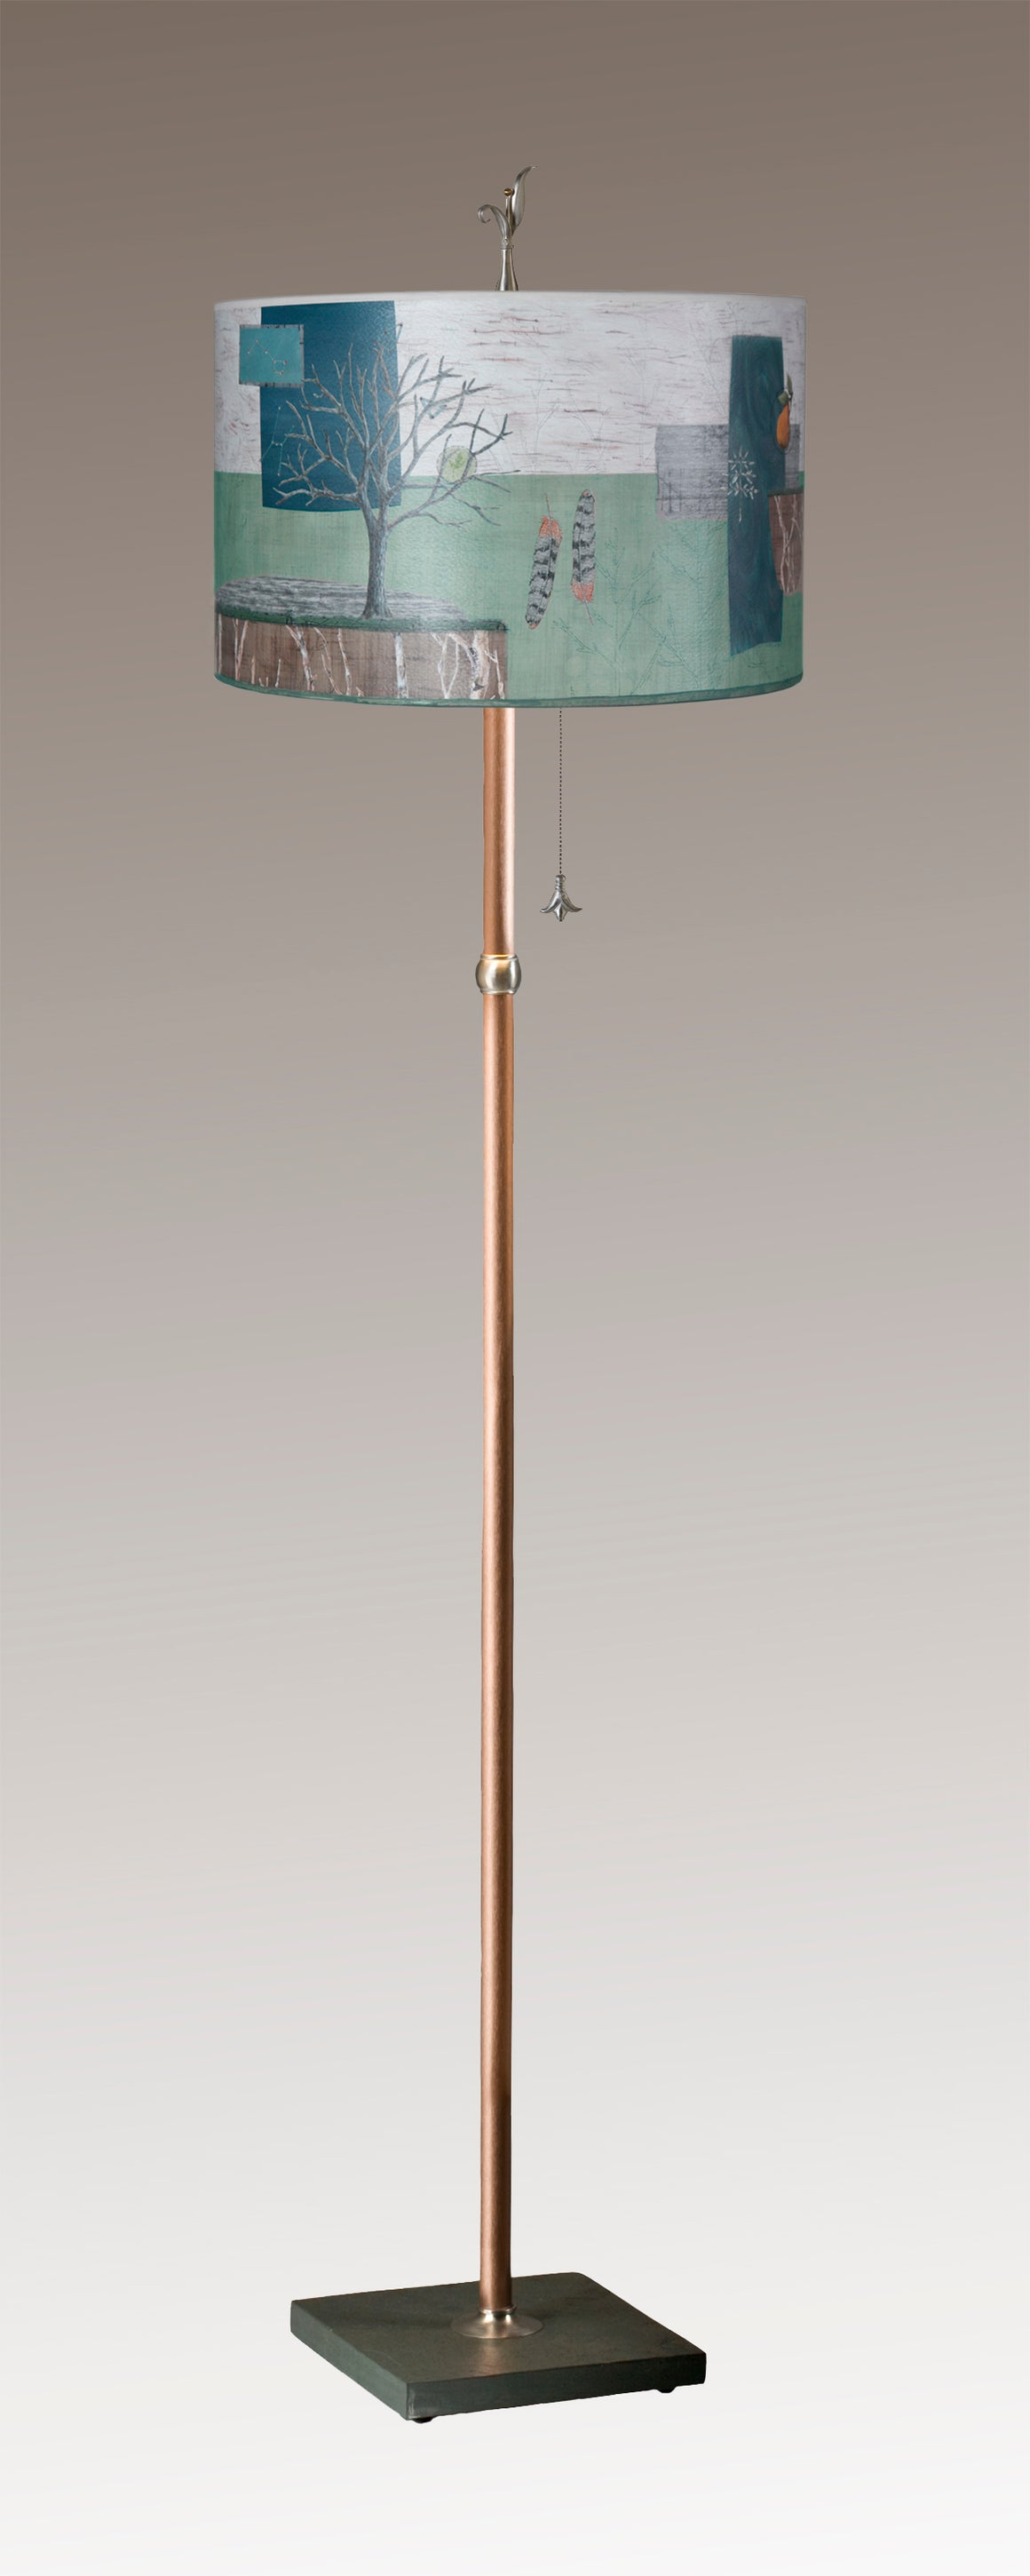 Copper Floor Lamp on Vermont Slate with Large Drum Shade in Wander in Field